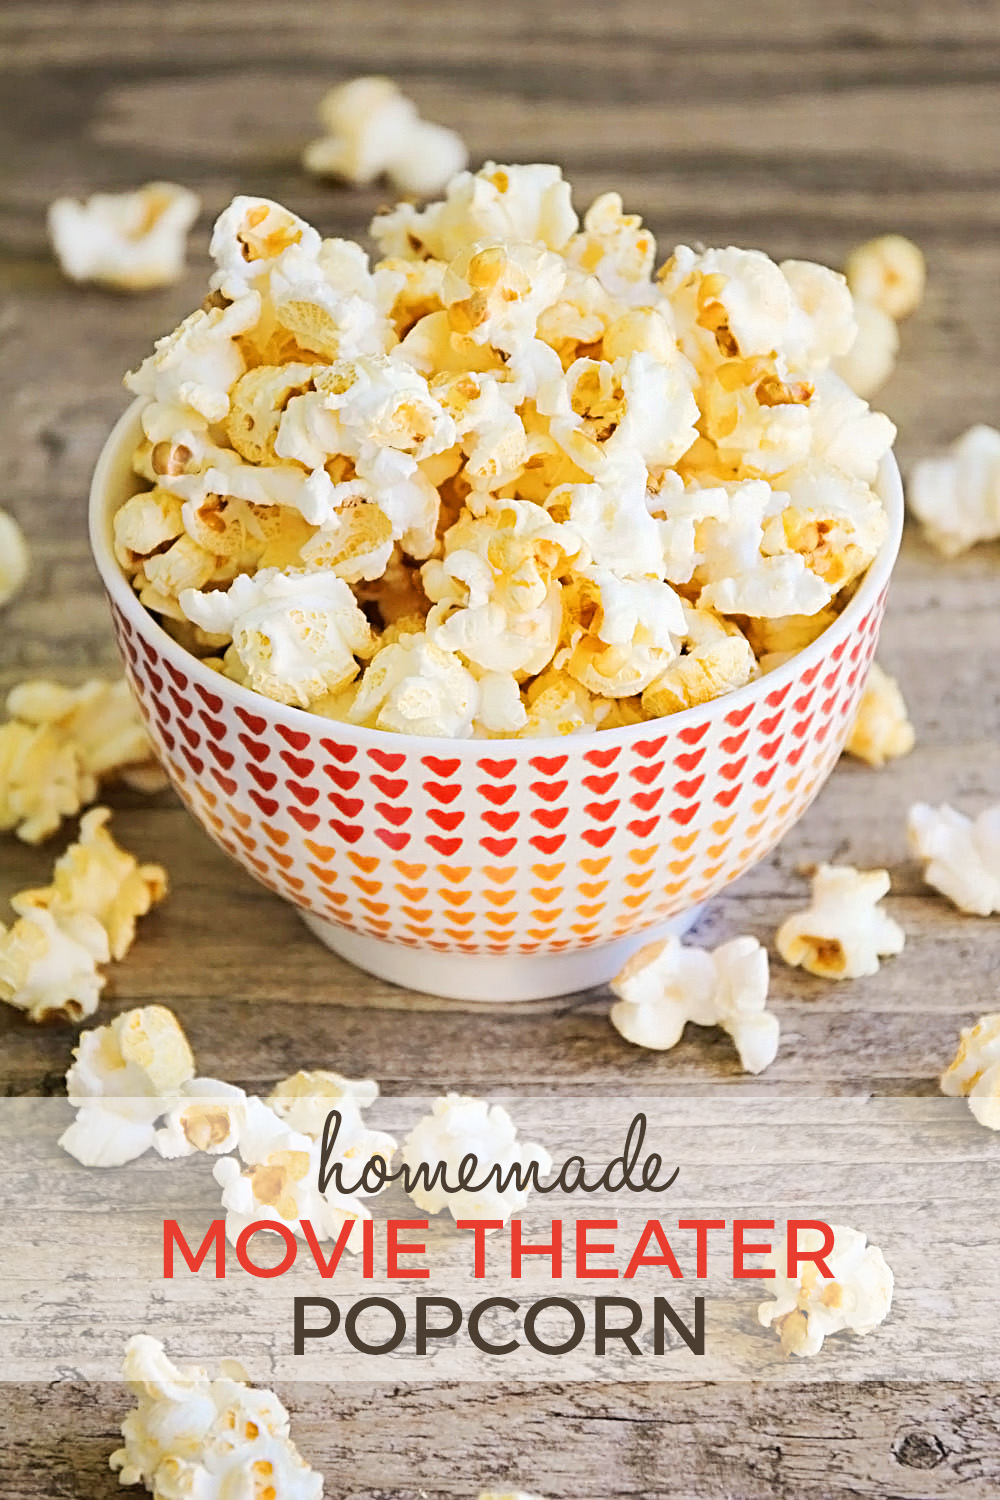 This homemade movie theater popcorn has only three ingredients and is ready in less than five minutes! Super delicious and easy too!